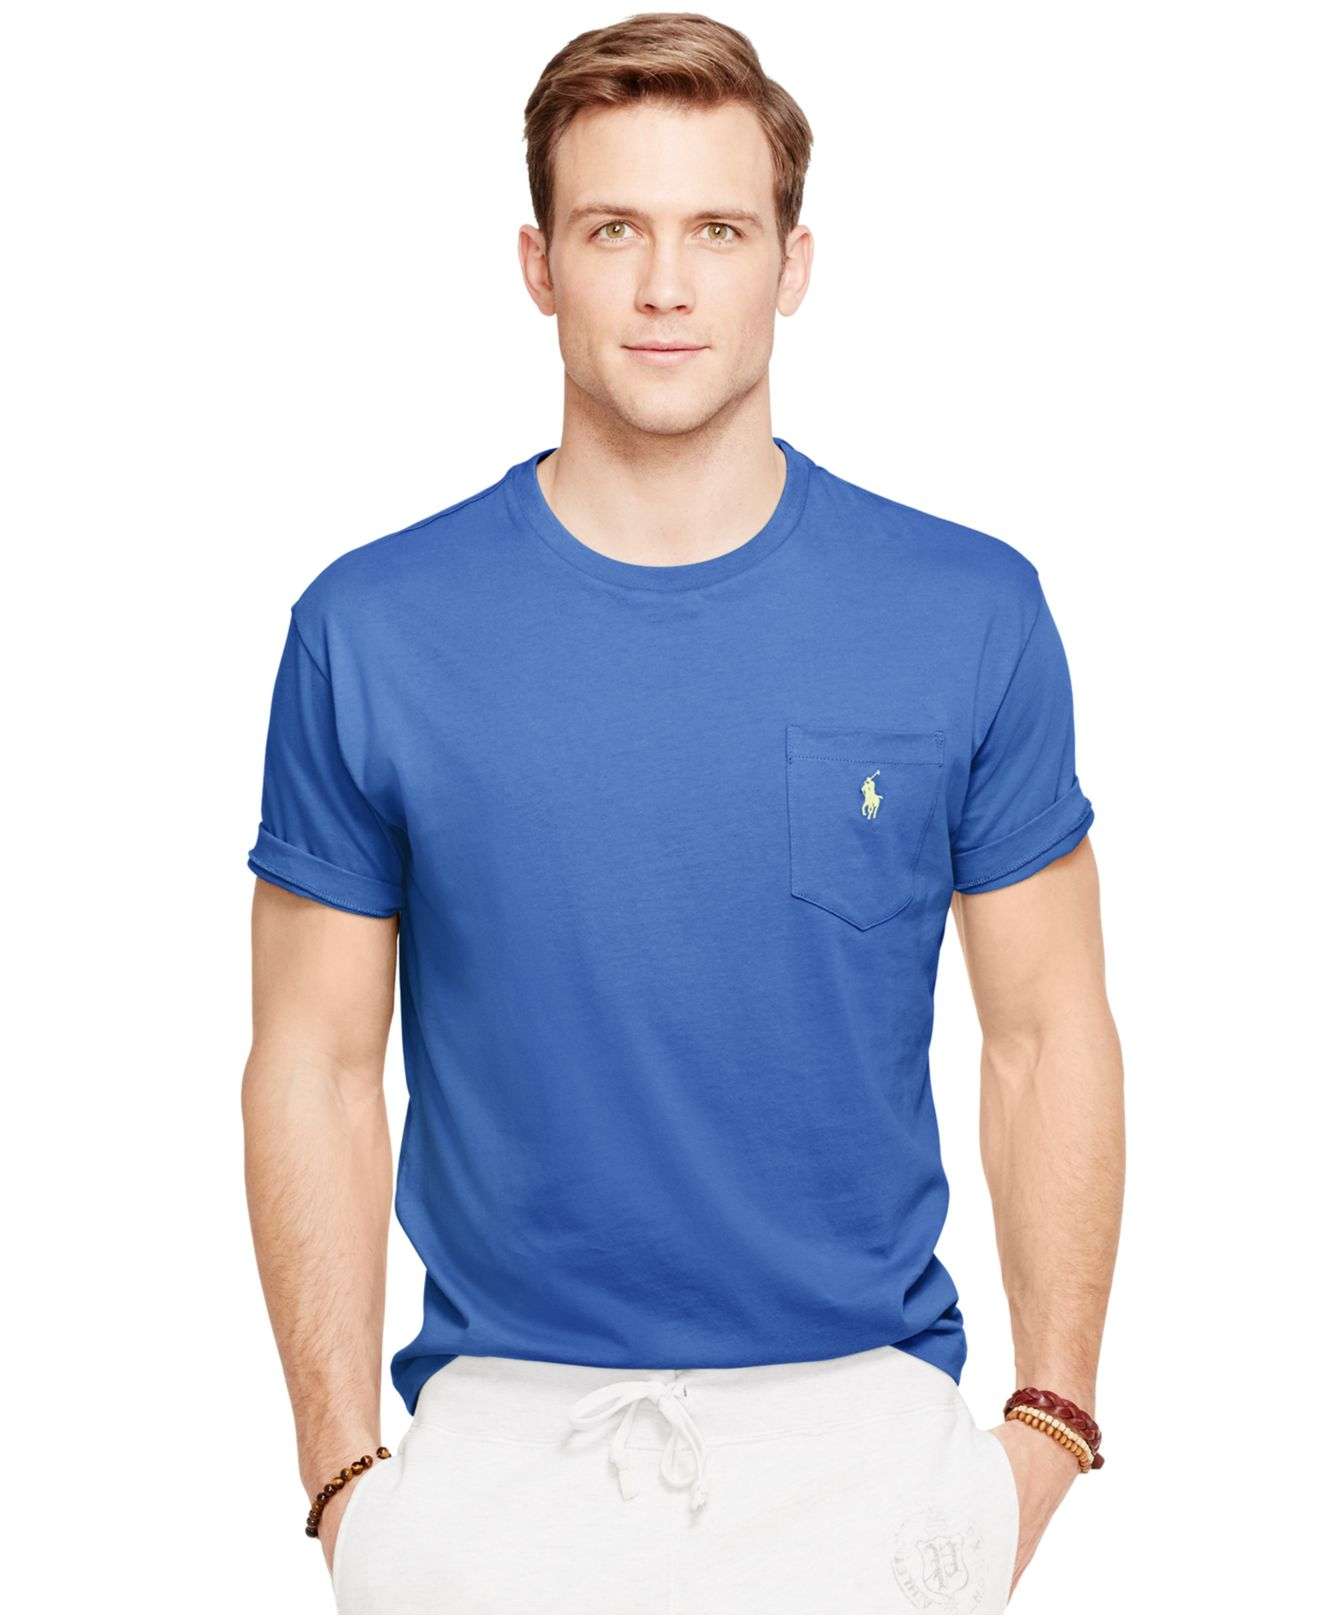 ralph lauren t shirt crew neck polo ralph lauren shirt sale. Black Bedroom Furniture Sets. Home Design Ideas